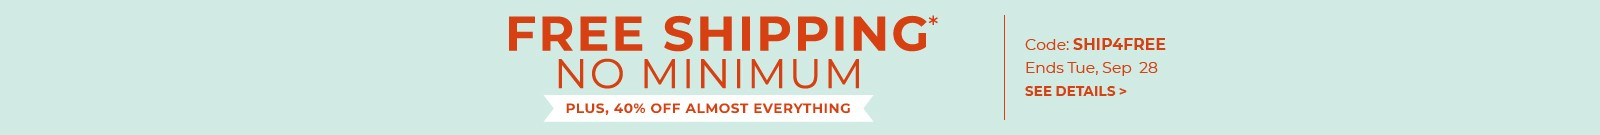 Free shipping* no minimum, plus, 40% off almost everything, code: SHIP4FREE, Ends Tue, Sep 28, see details